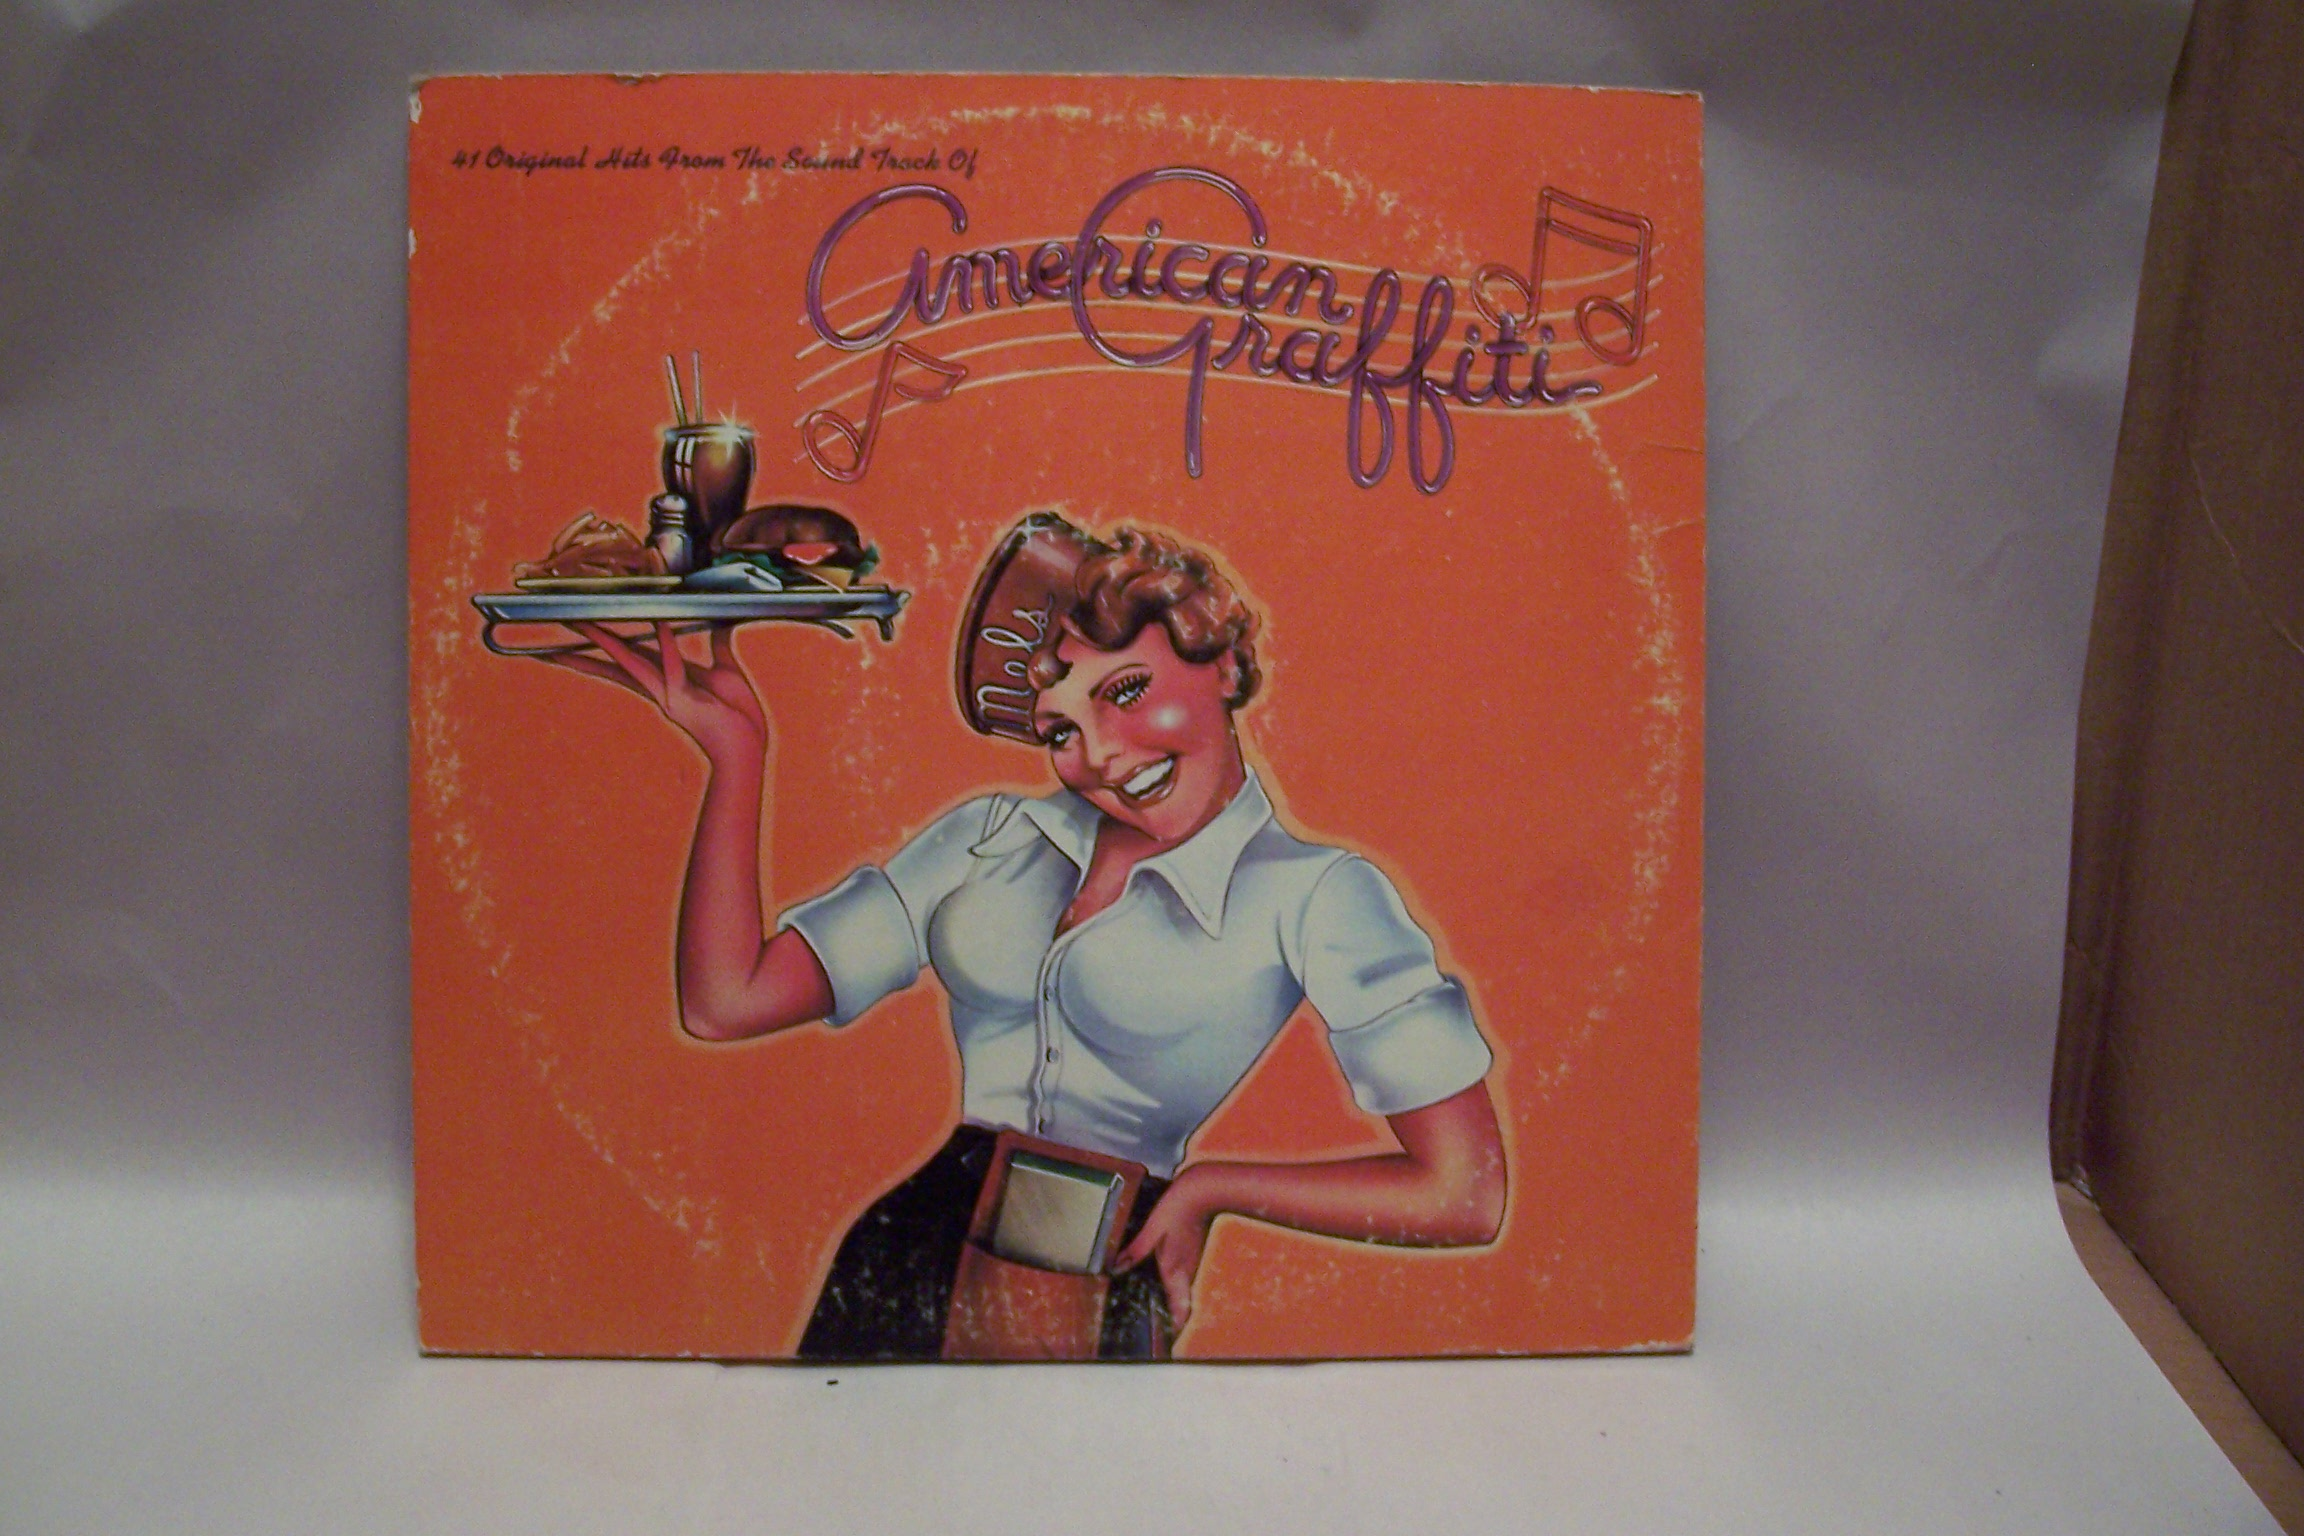 American graffiti music related recordings lps at fort logan contemporaries